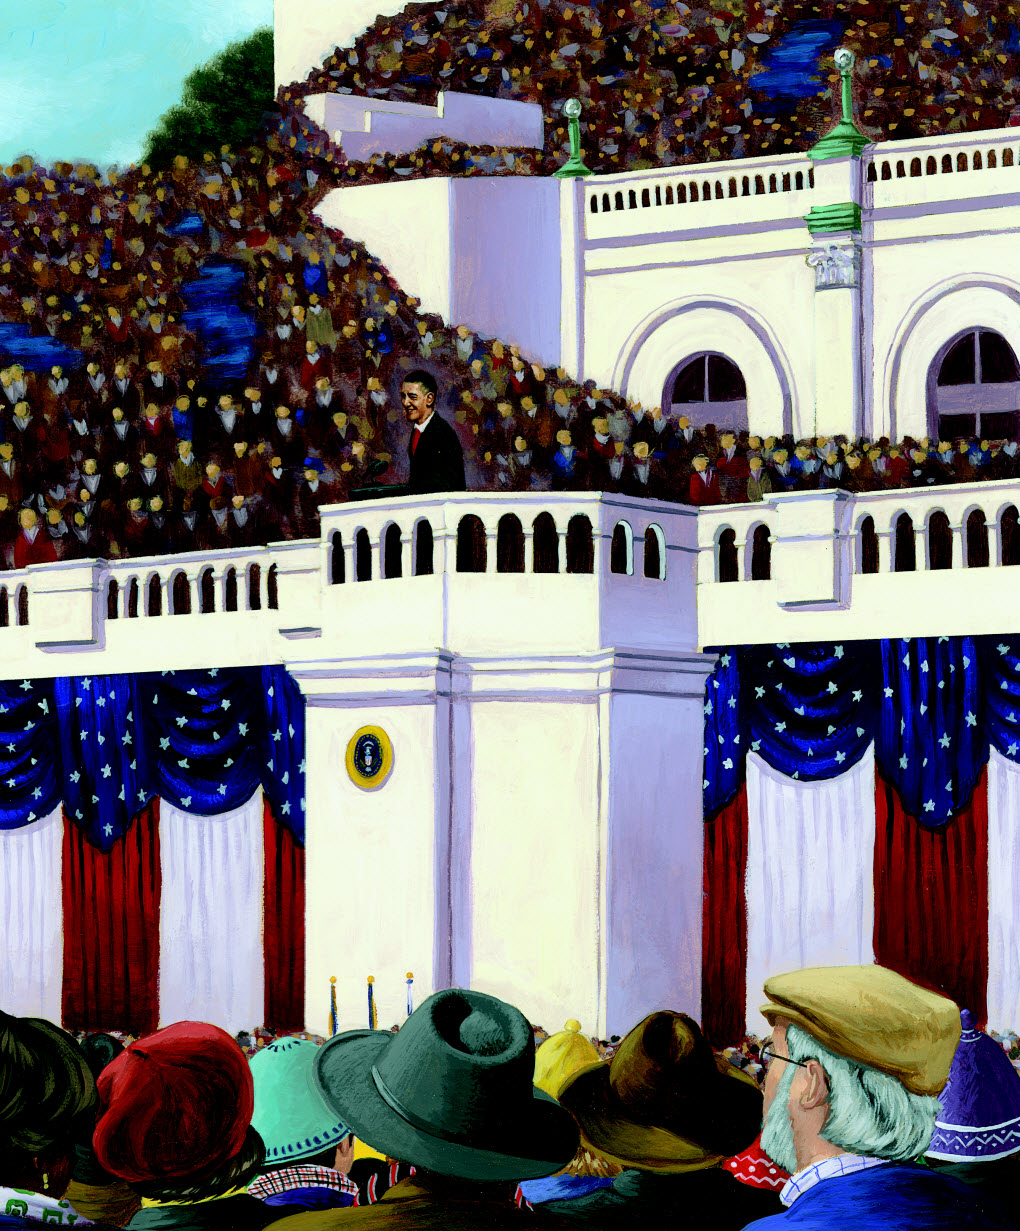 OUR WHITE HOUSE. Illustration © 2008 by A. G. Ford. Reproduced by permission of the publisher, Candlewick Press, Somerville, MA.